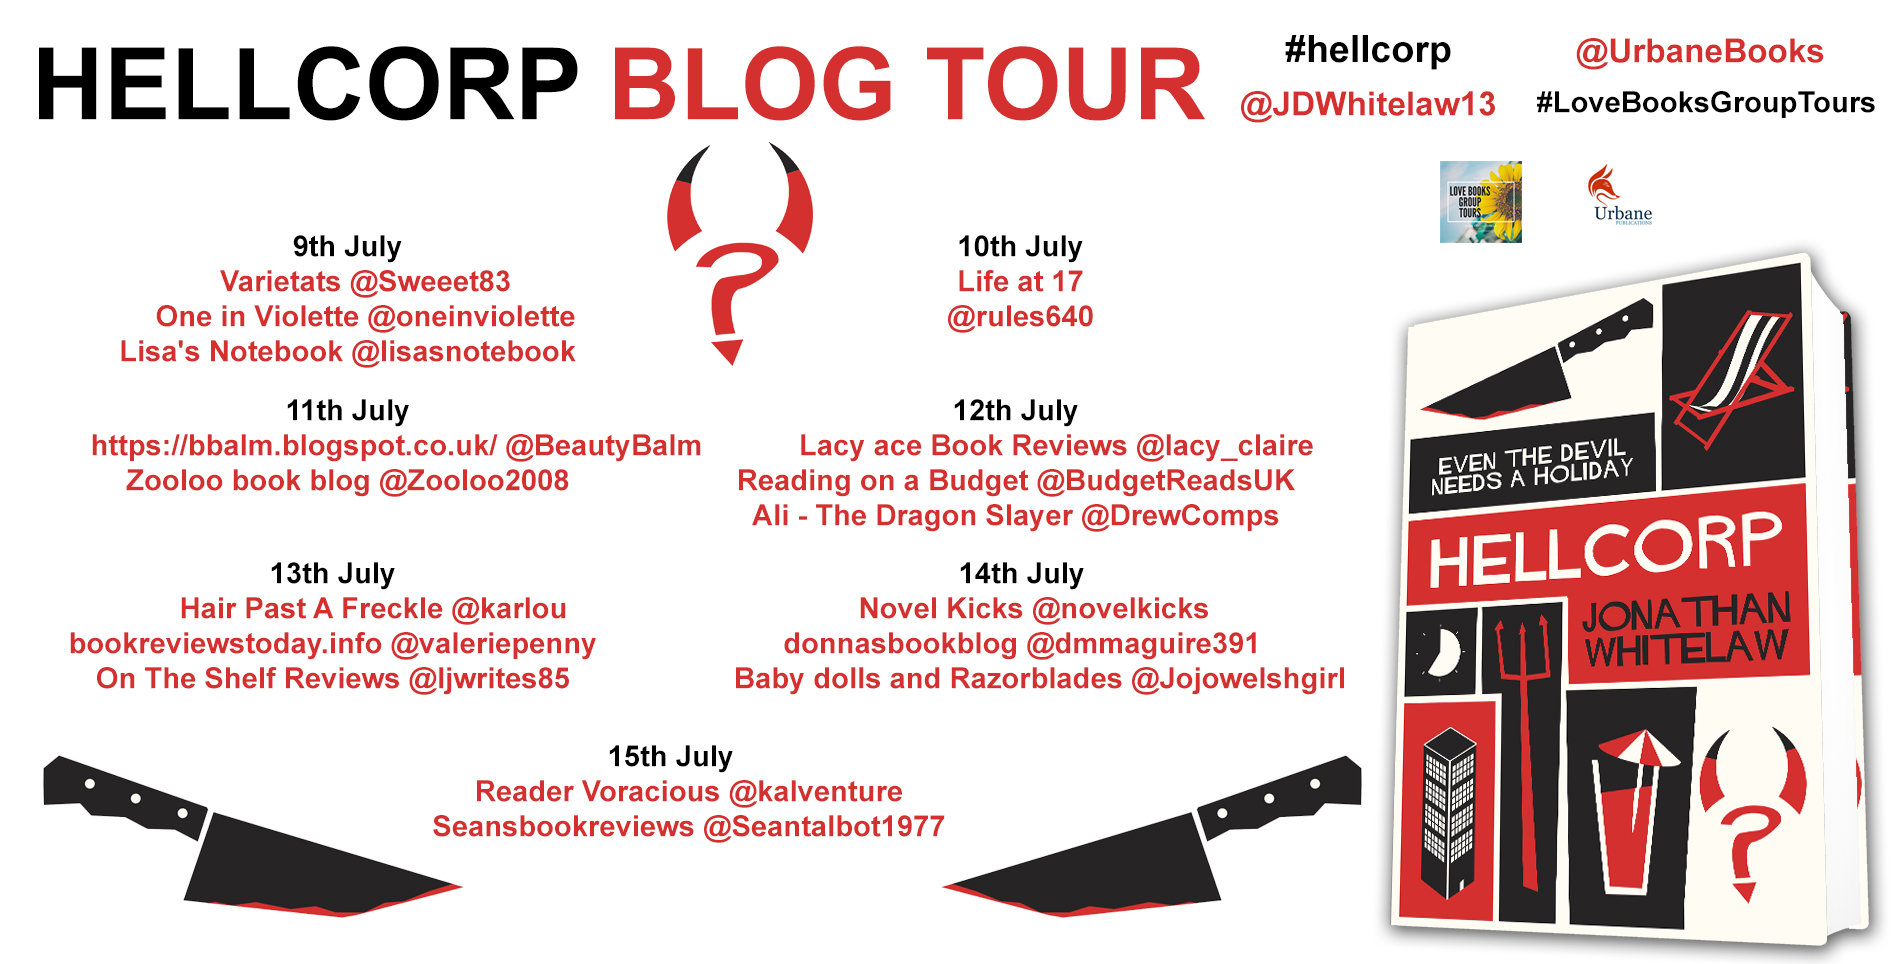 HellCorp Blog Tour info